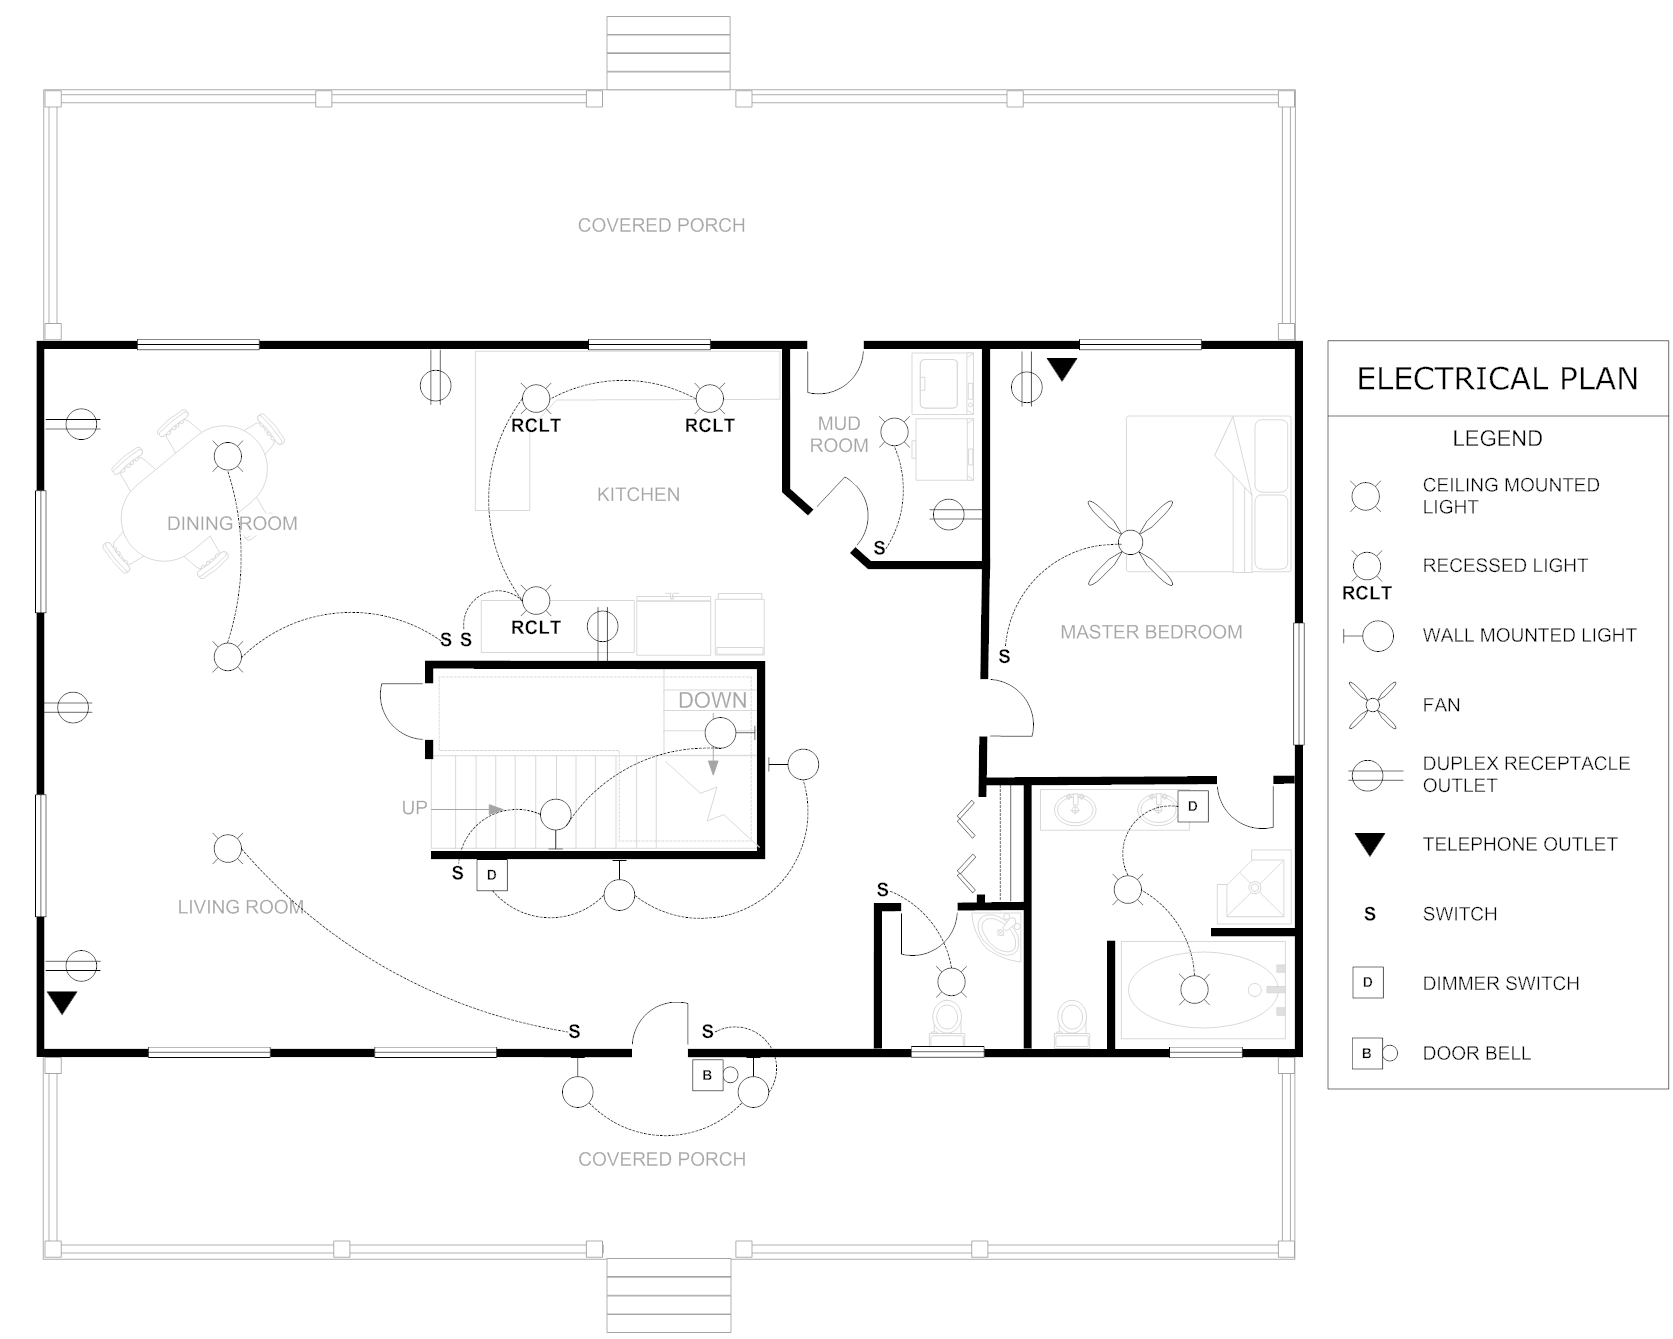 sample house plans with dimensions - Sample House Plans